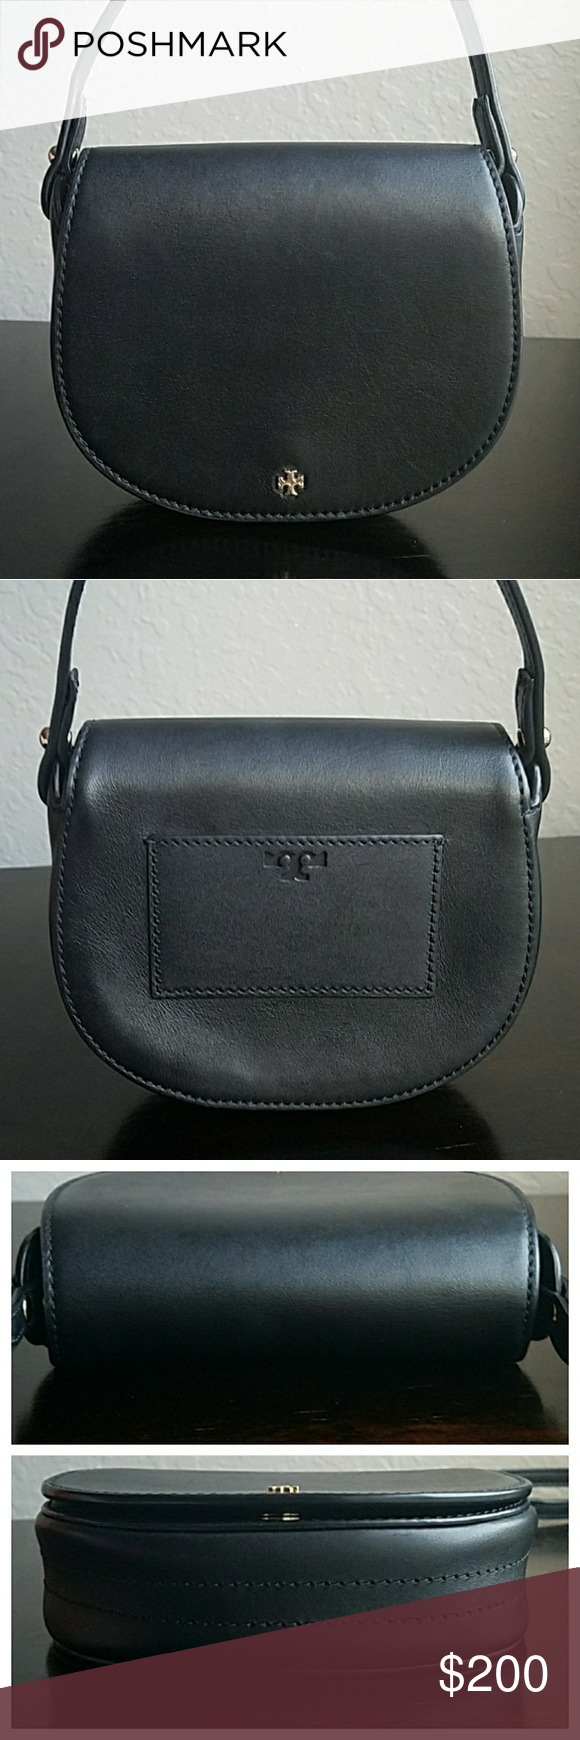 """Tory Burch Small Saddlebag Authentic Tory Burch small saddle bag. Approx. 6.5""""L x 5.5""""H x 2""""D. Adjustable strap with up to a 24"""" drop. Cardholder on exterior back. Interior includes two slip pockets. Great pre-loved condition with light tarnish to the logo & some scratches on the leather that can only be seen when you are looking from a certain angle common w/ this type of leather.   Buy the conference: ✔Poshmark Ambassador ✔Top rated seller ✔Top 10% seller ✔Fast shipper Tory Burch Bags"""